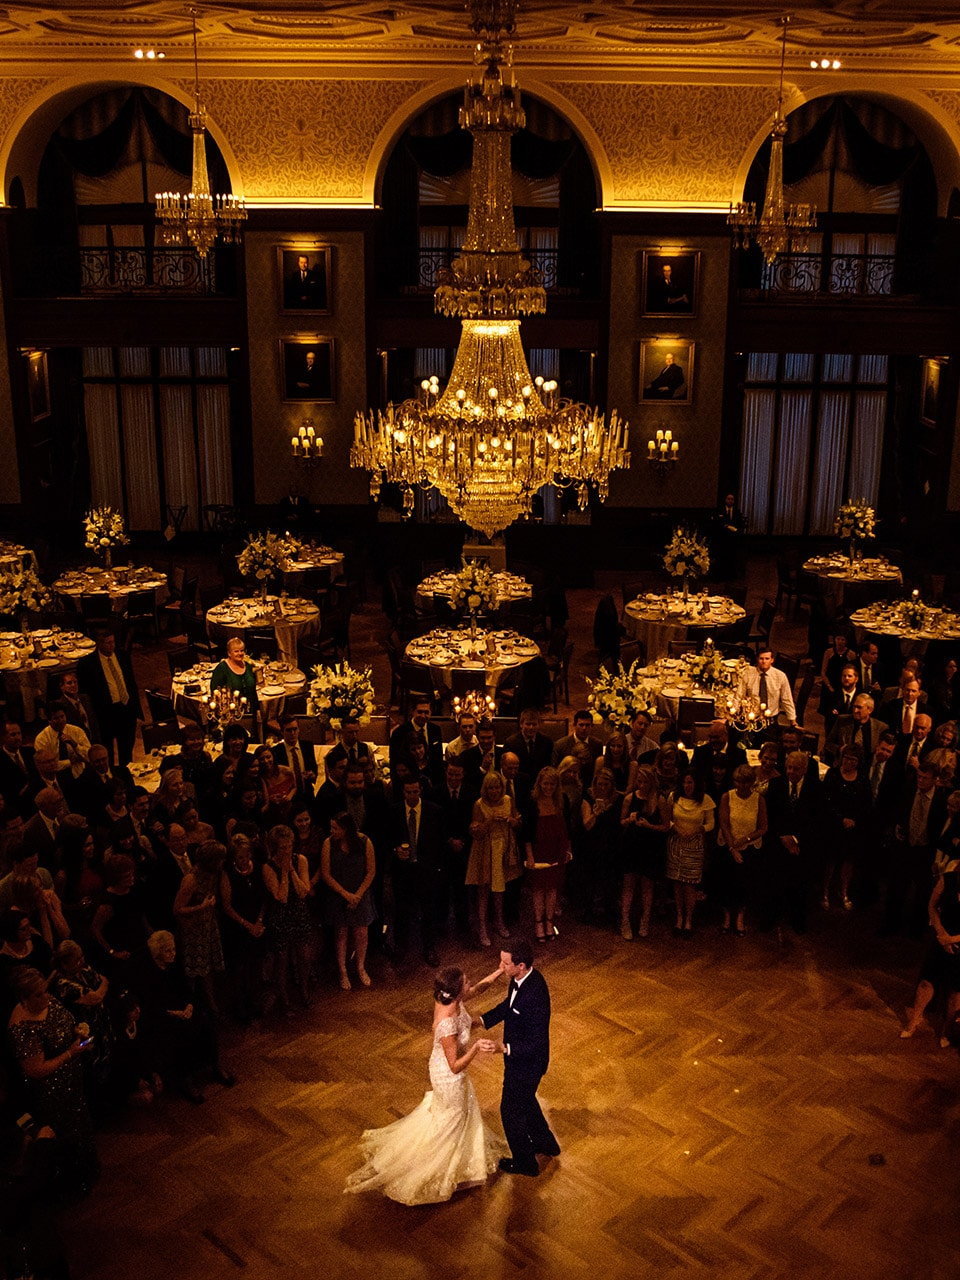 Bride & Groom during their first dance at the Union League in Philadelphia, PA.